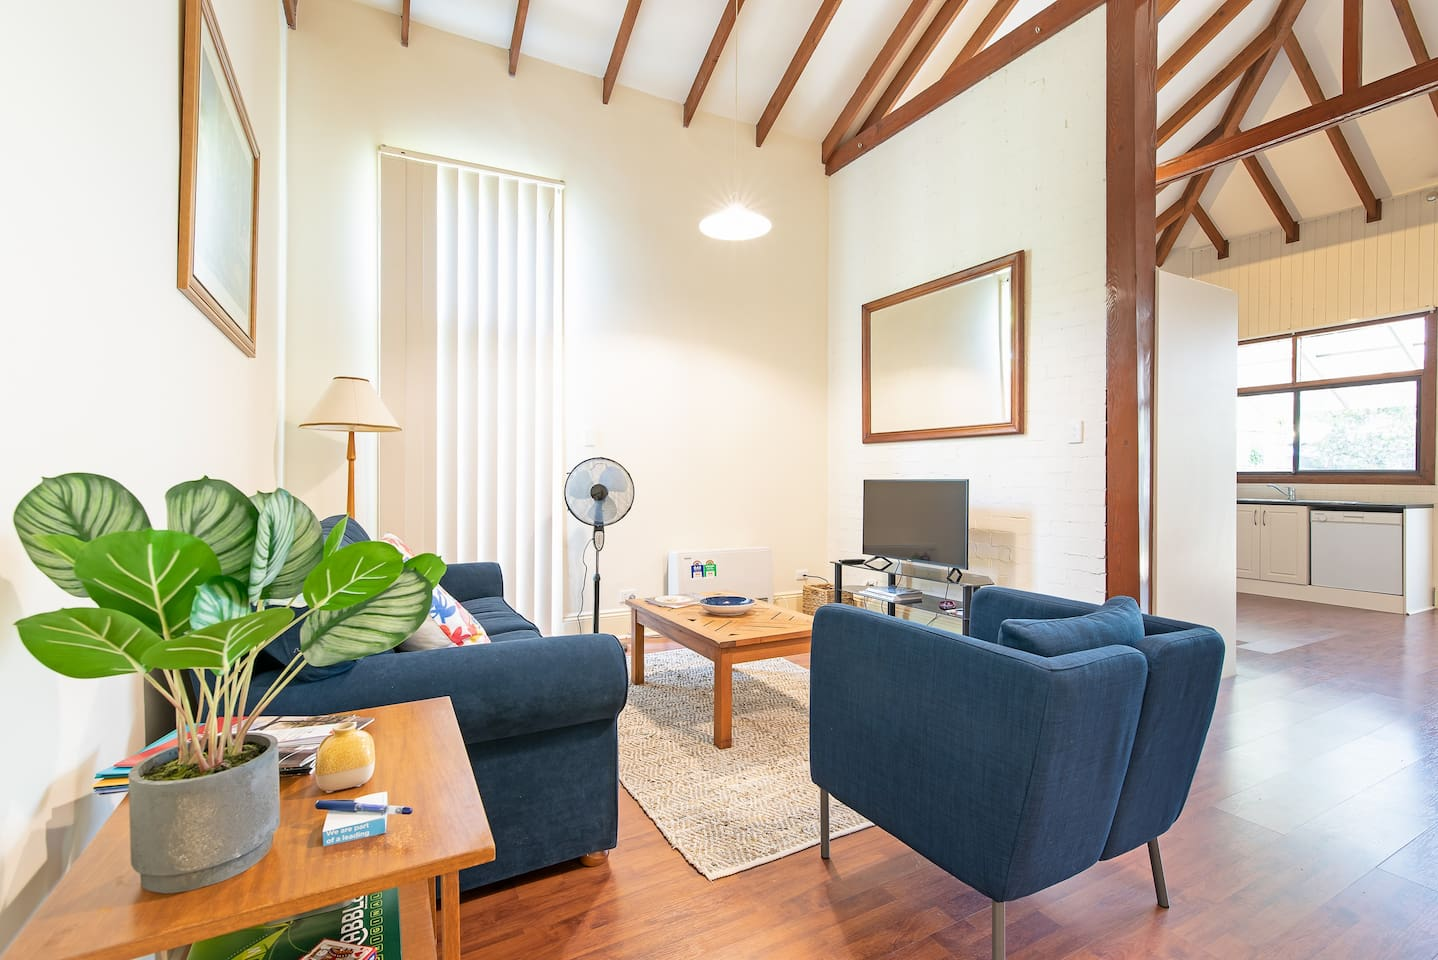 Spacious living space with smartTV and plenty of seating options for 3 guests.